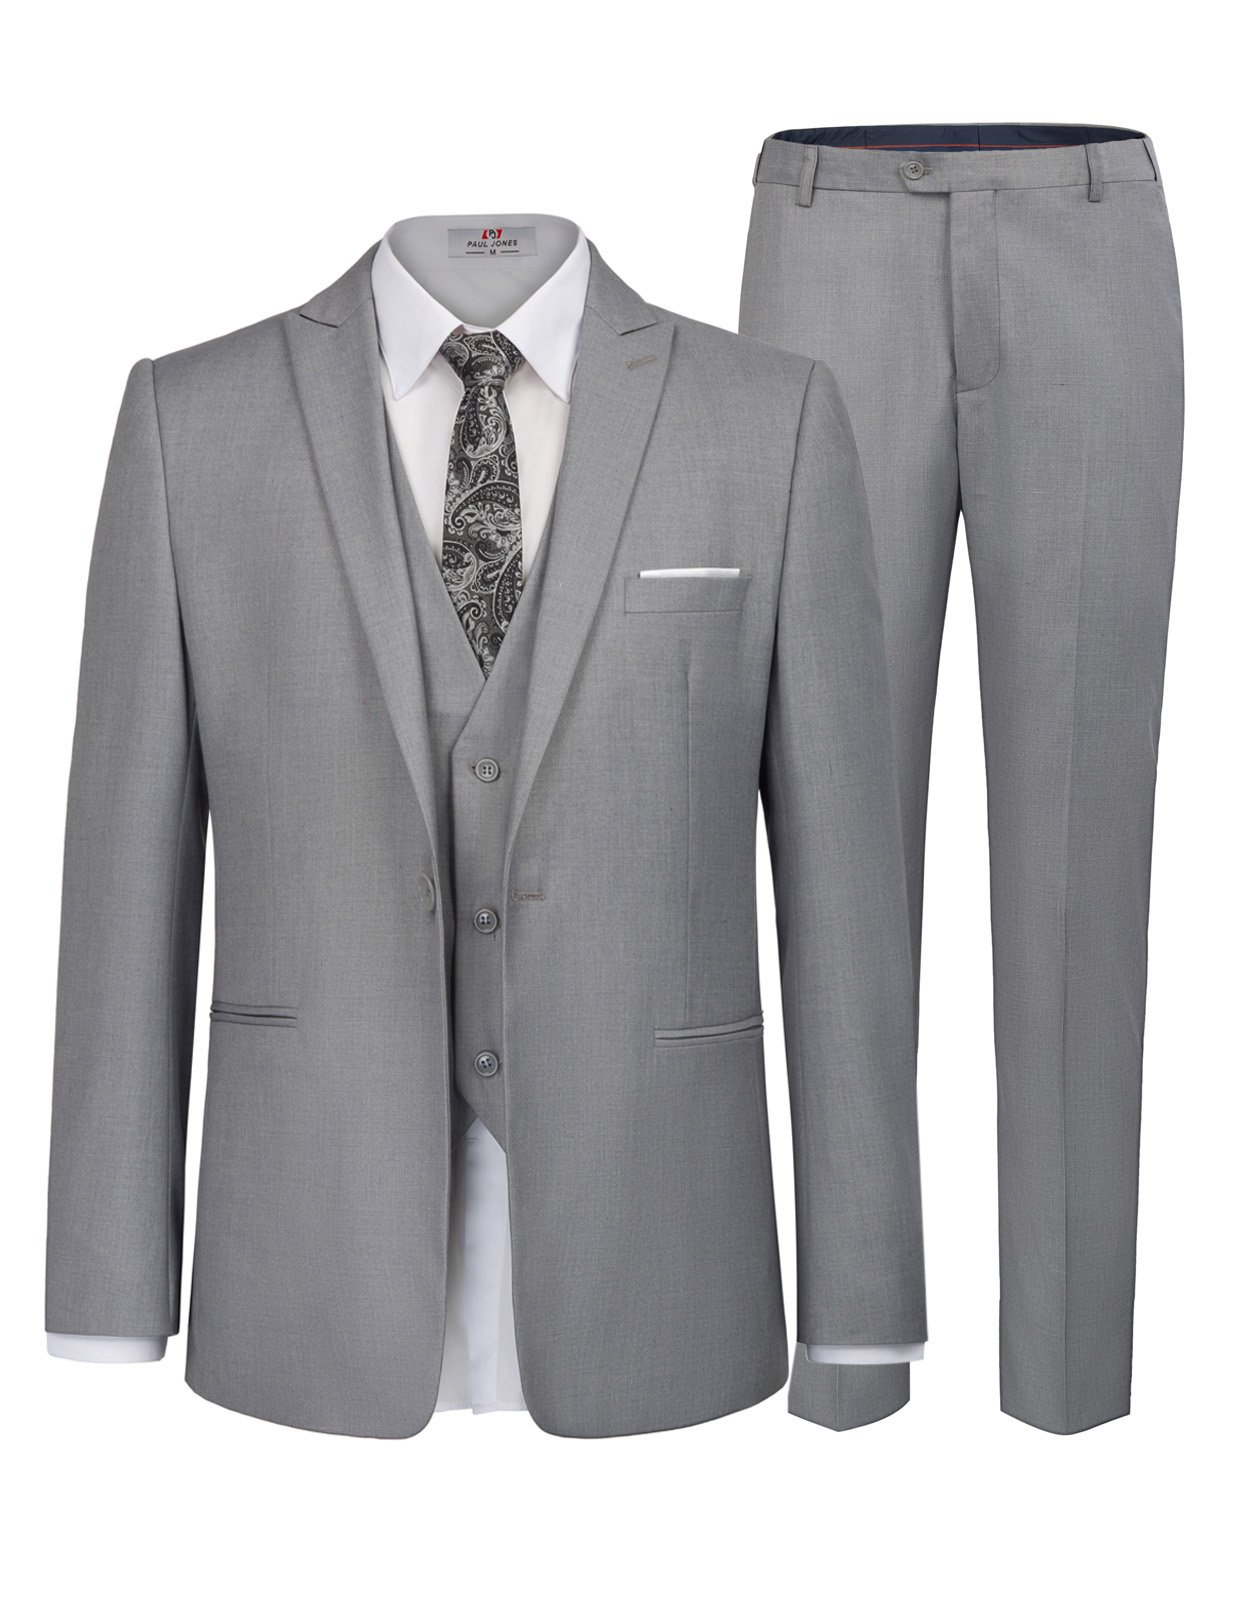 PAUL JONES Mens 3-Piece Suit Solid Modern Fit Single Breasted Formal Suits Size XL Grey